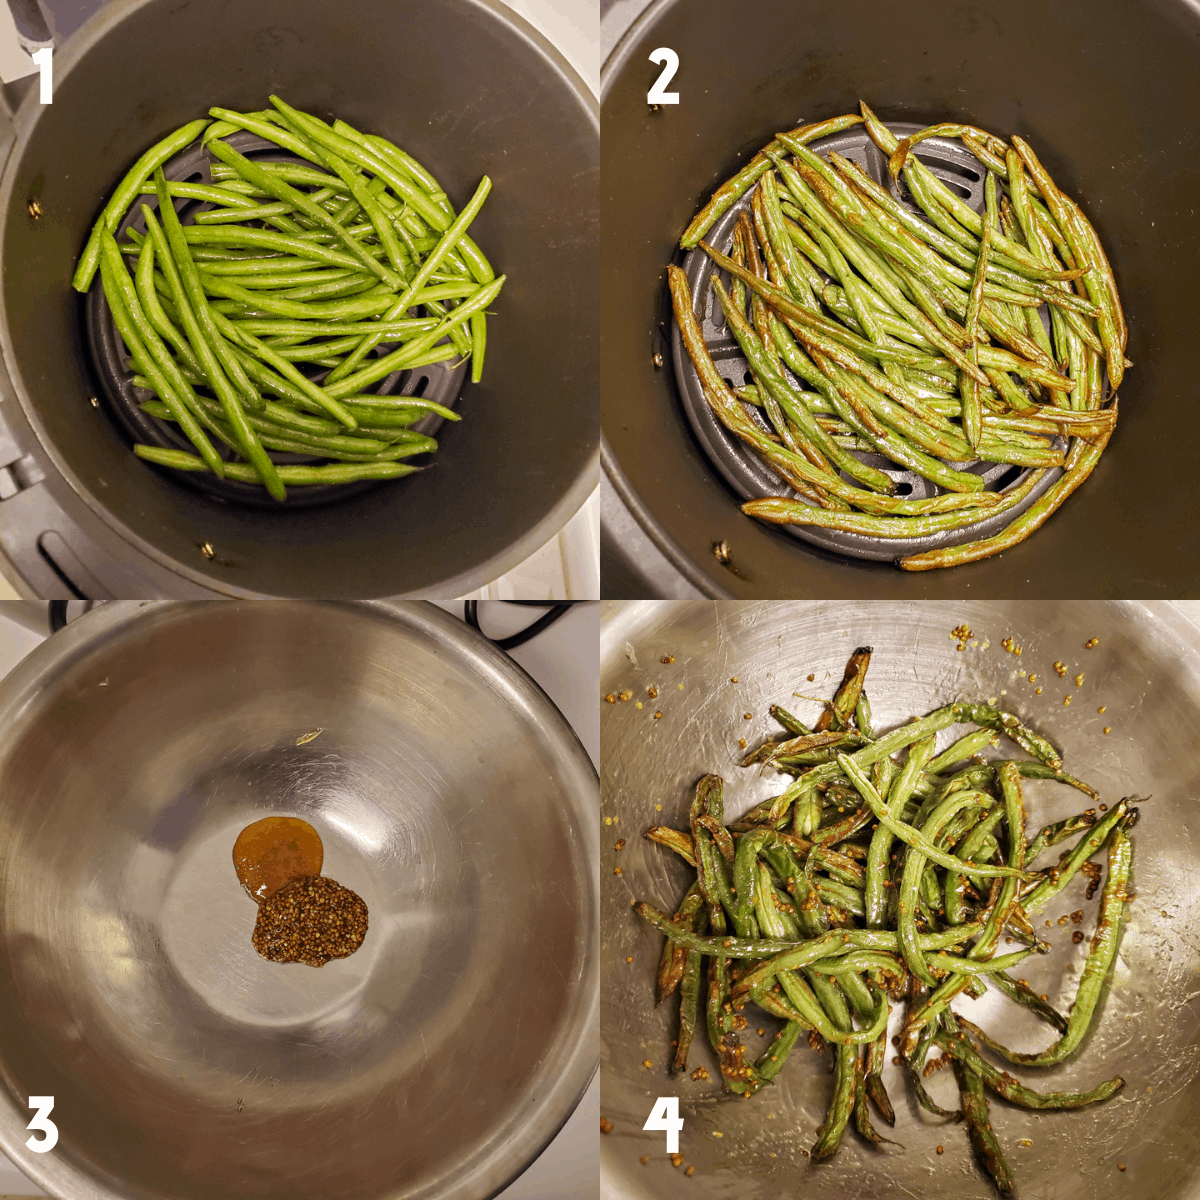 2x2 photo collage showing the cooking process. Photo 1: Raw green beans in the air fryer, seasoned and ready to be cooked. Photo 2: Fully cooked green beans in the air fryer. Photo 3: Honey and mustard in a large metal mixing bowl. Photo 4: Cooked green beans tossed in the honey and mustard combination in a large metal mixing bowl.